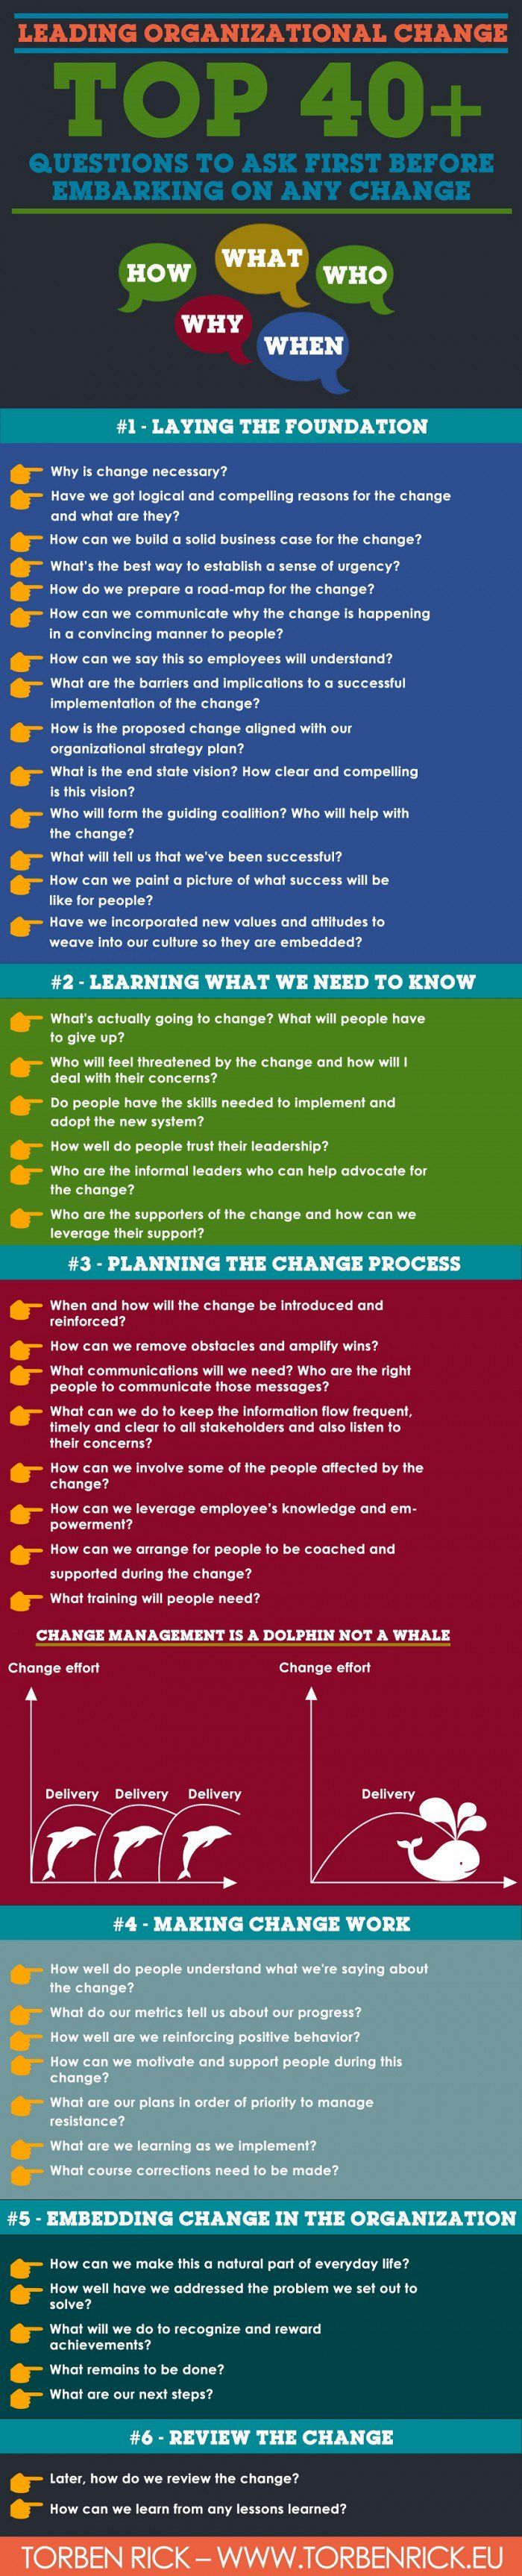 Infographic-Top-40-questions-to-ask-before-embarking-on-any-change-management-e1400671078939.jpg (700×3453)